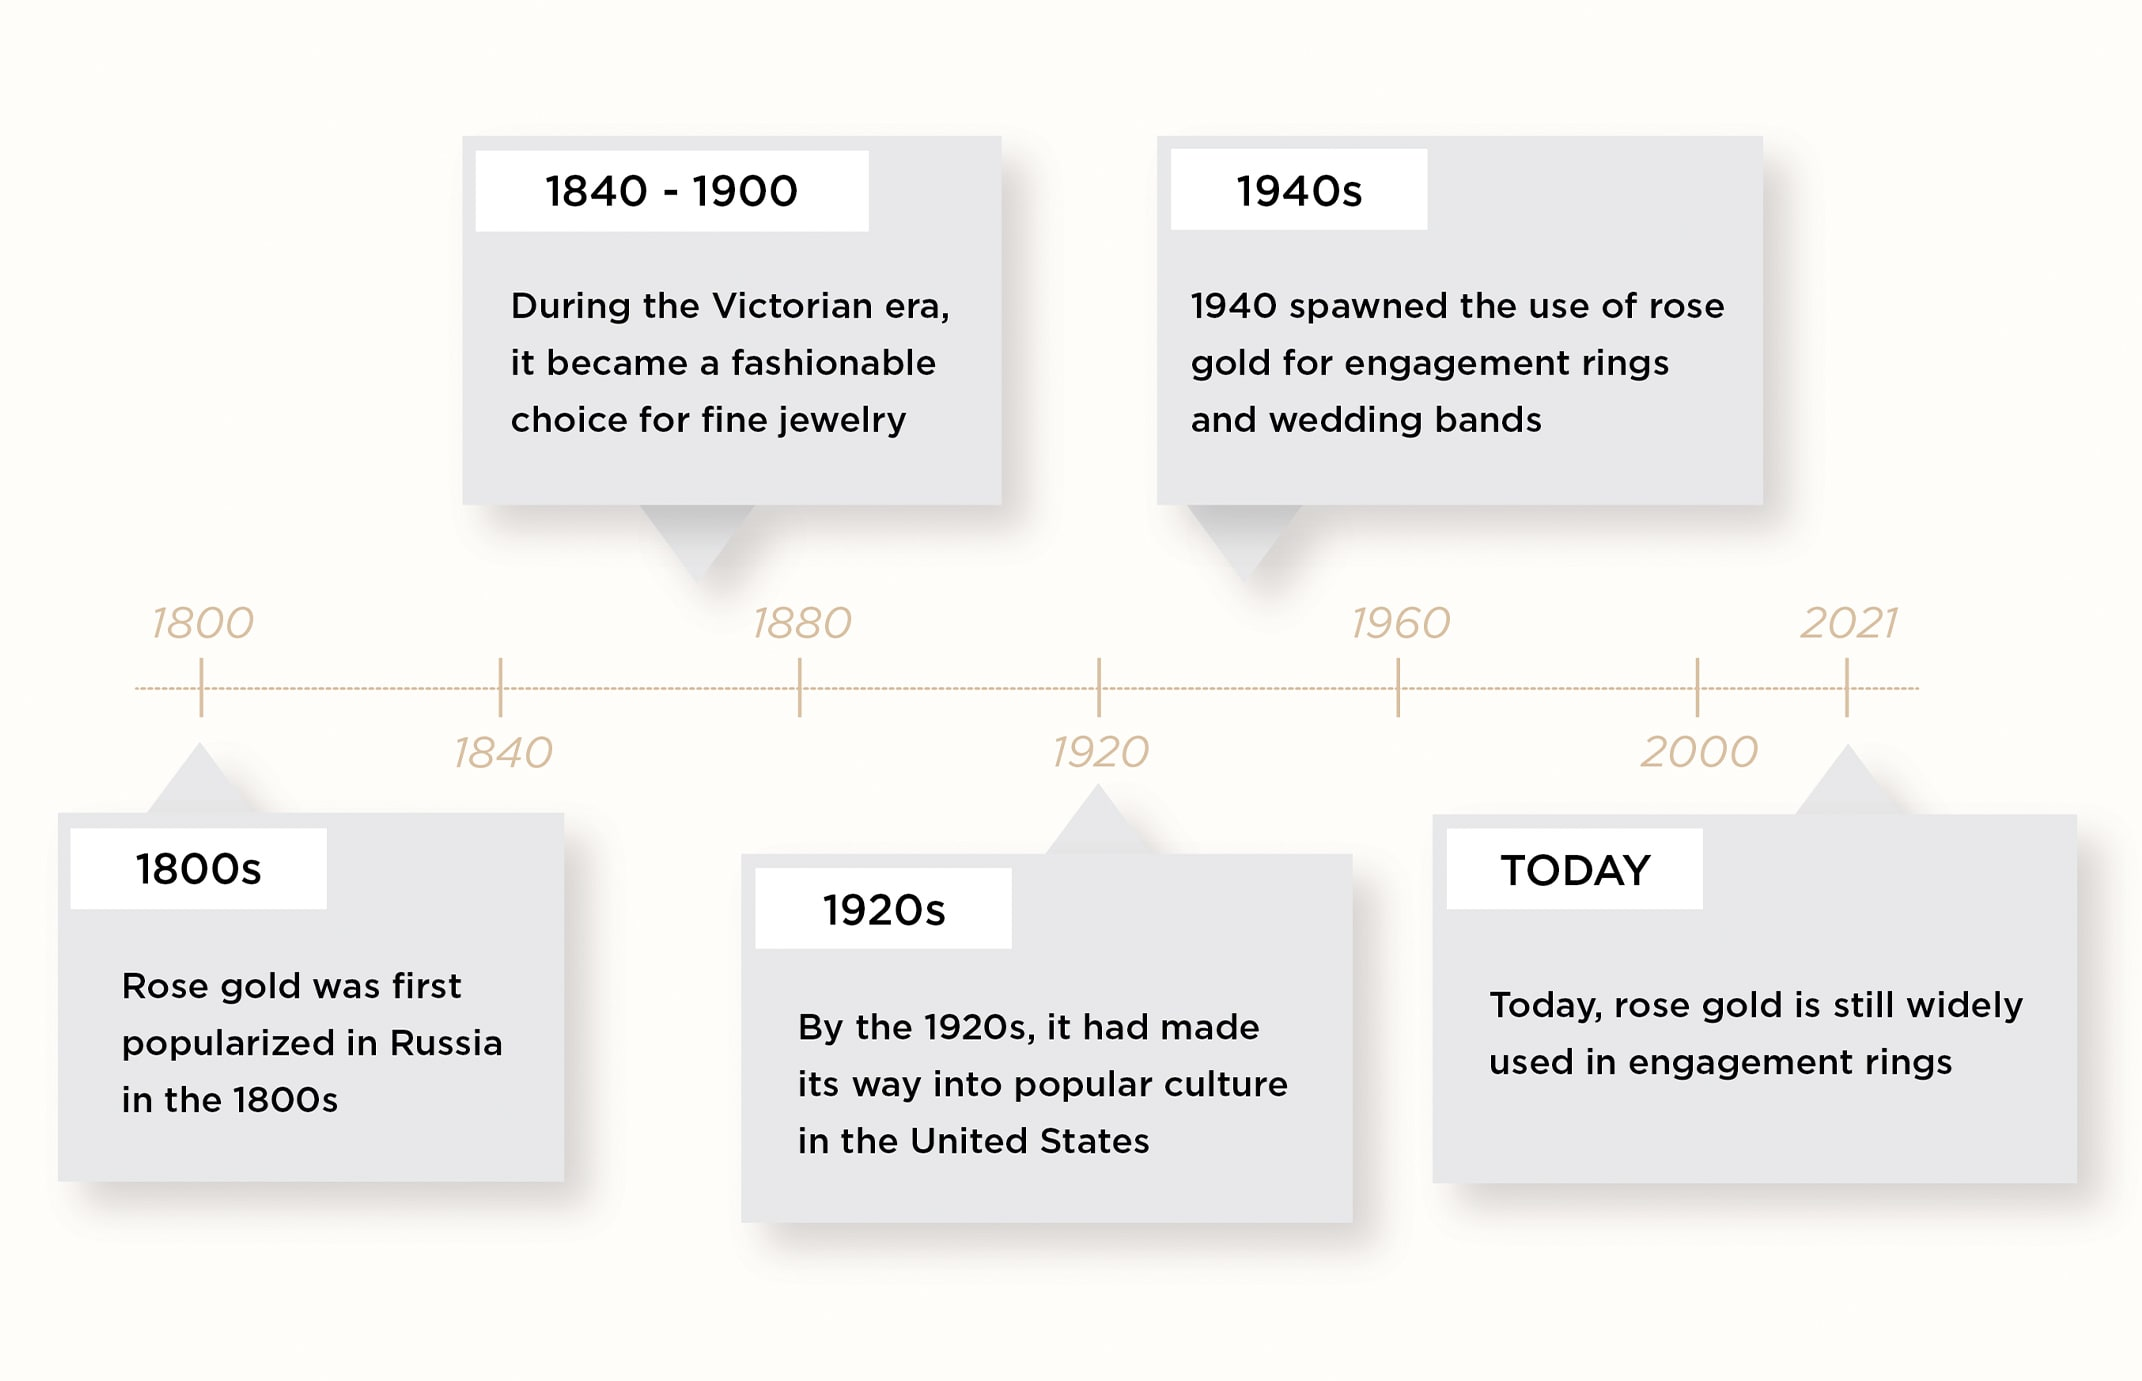 A chart outlining the history of rose gold